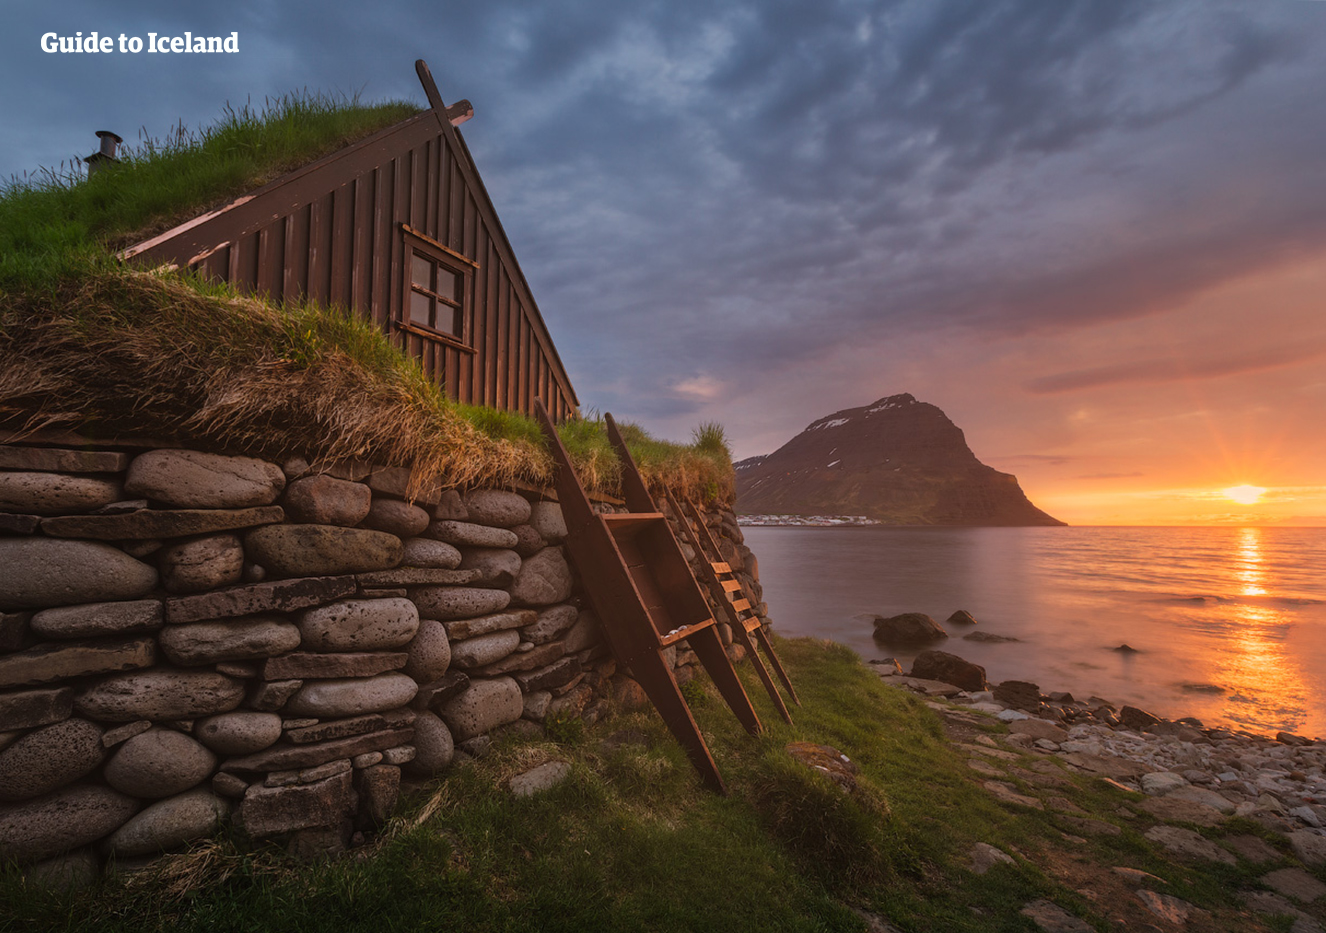 Old traditional turf house found in Bolungarvík, in Iceland's Westfjords.